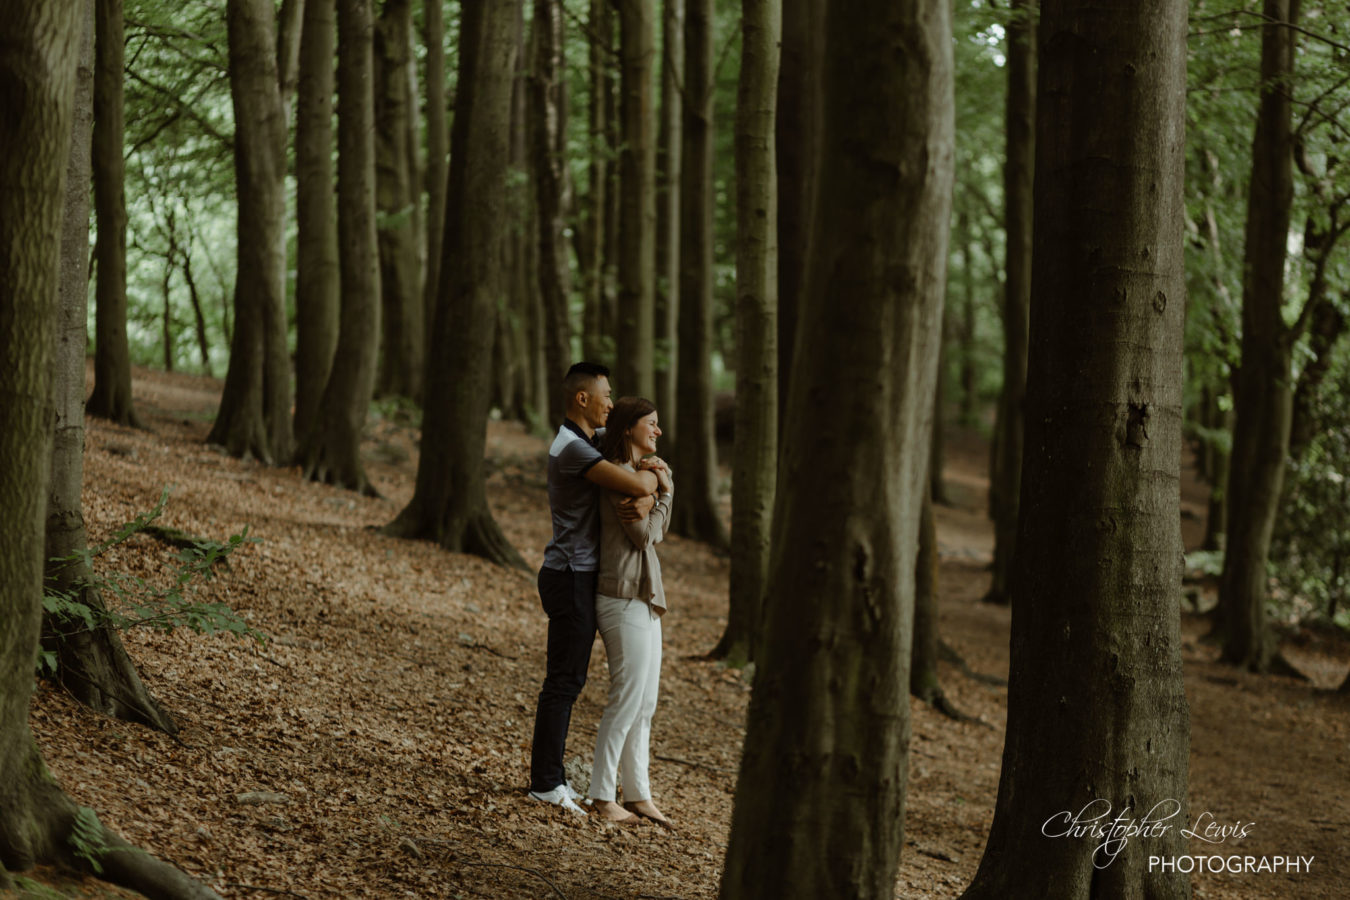 Cranage-Hall-Pre-Wedding-Photo-15